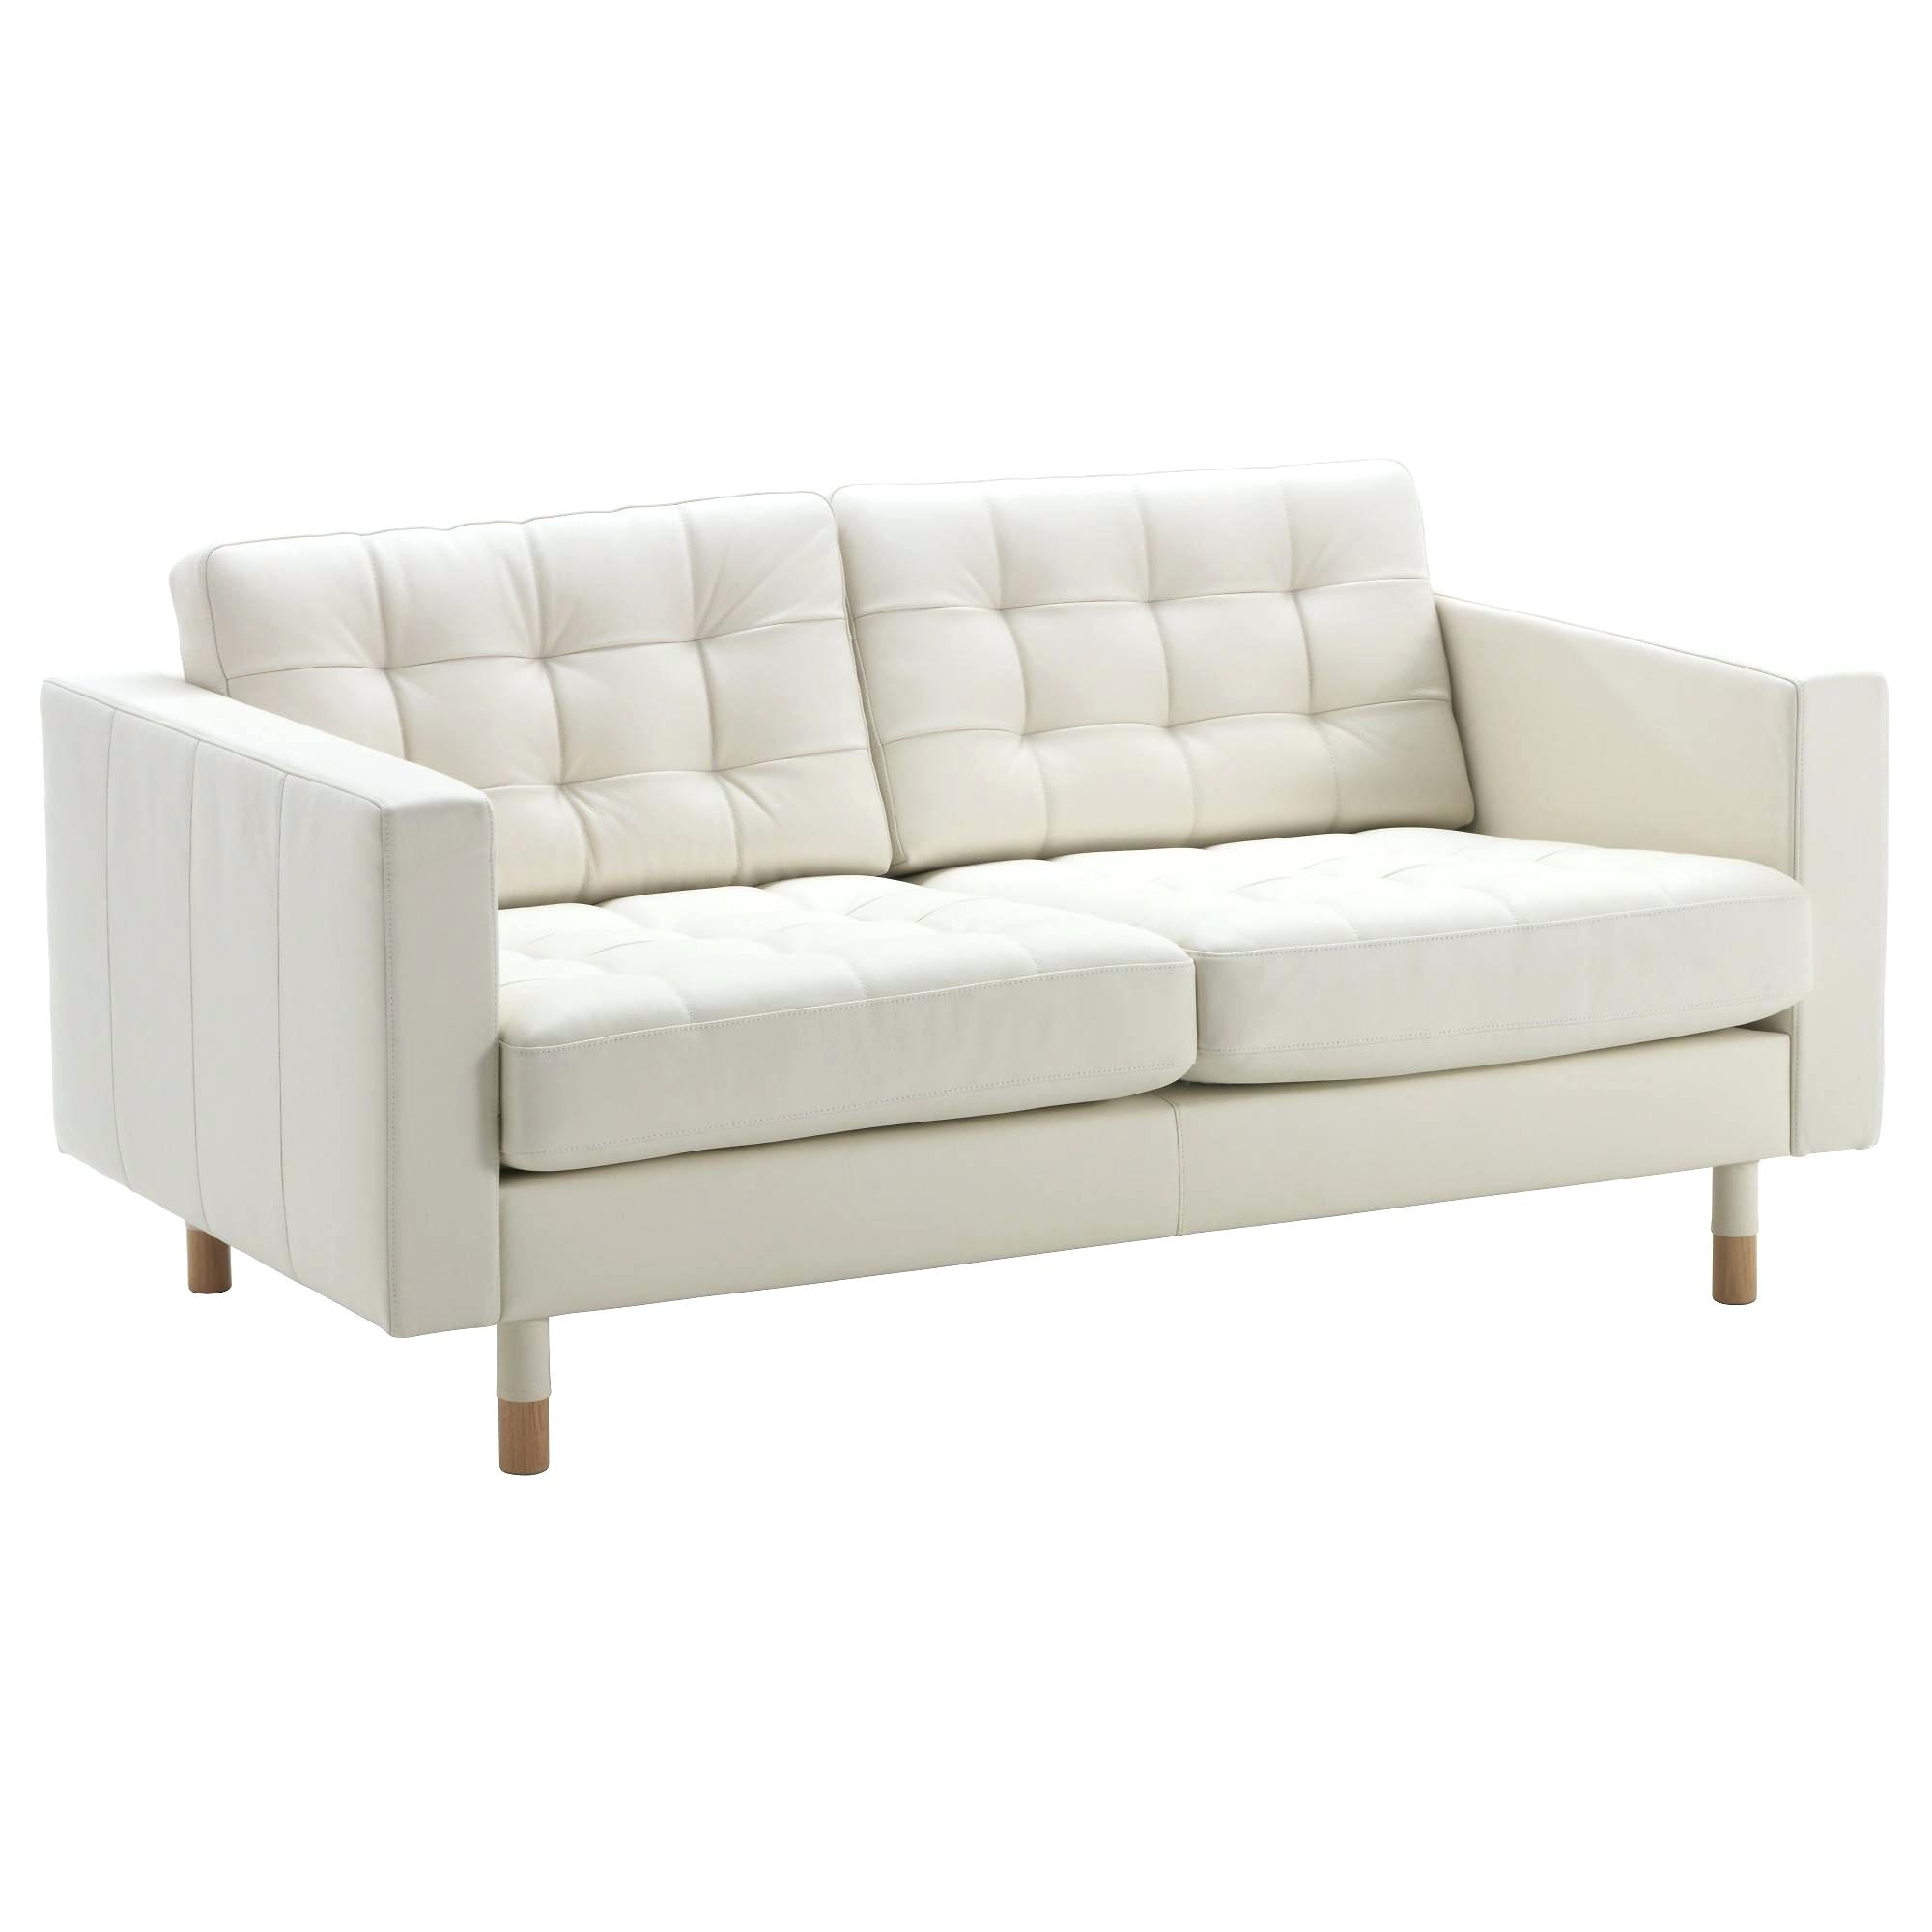 Favorite Small 2 Seater Sofas Pertaining To Small Sofas Leather Ikea 2 Seater Sofa With Storage Target (View 10 of 20)